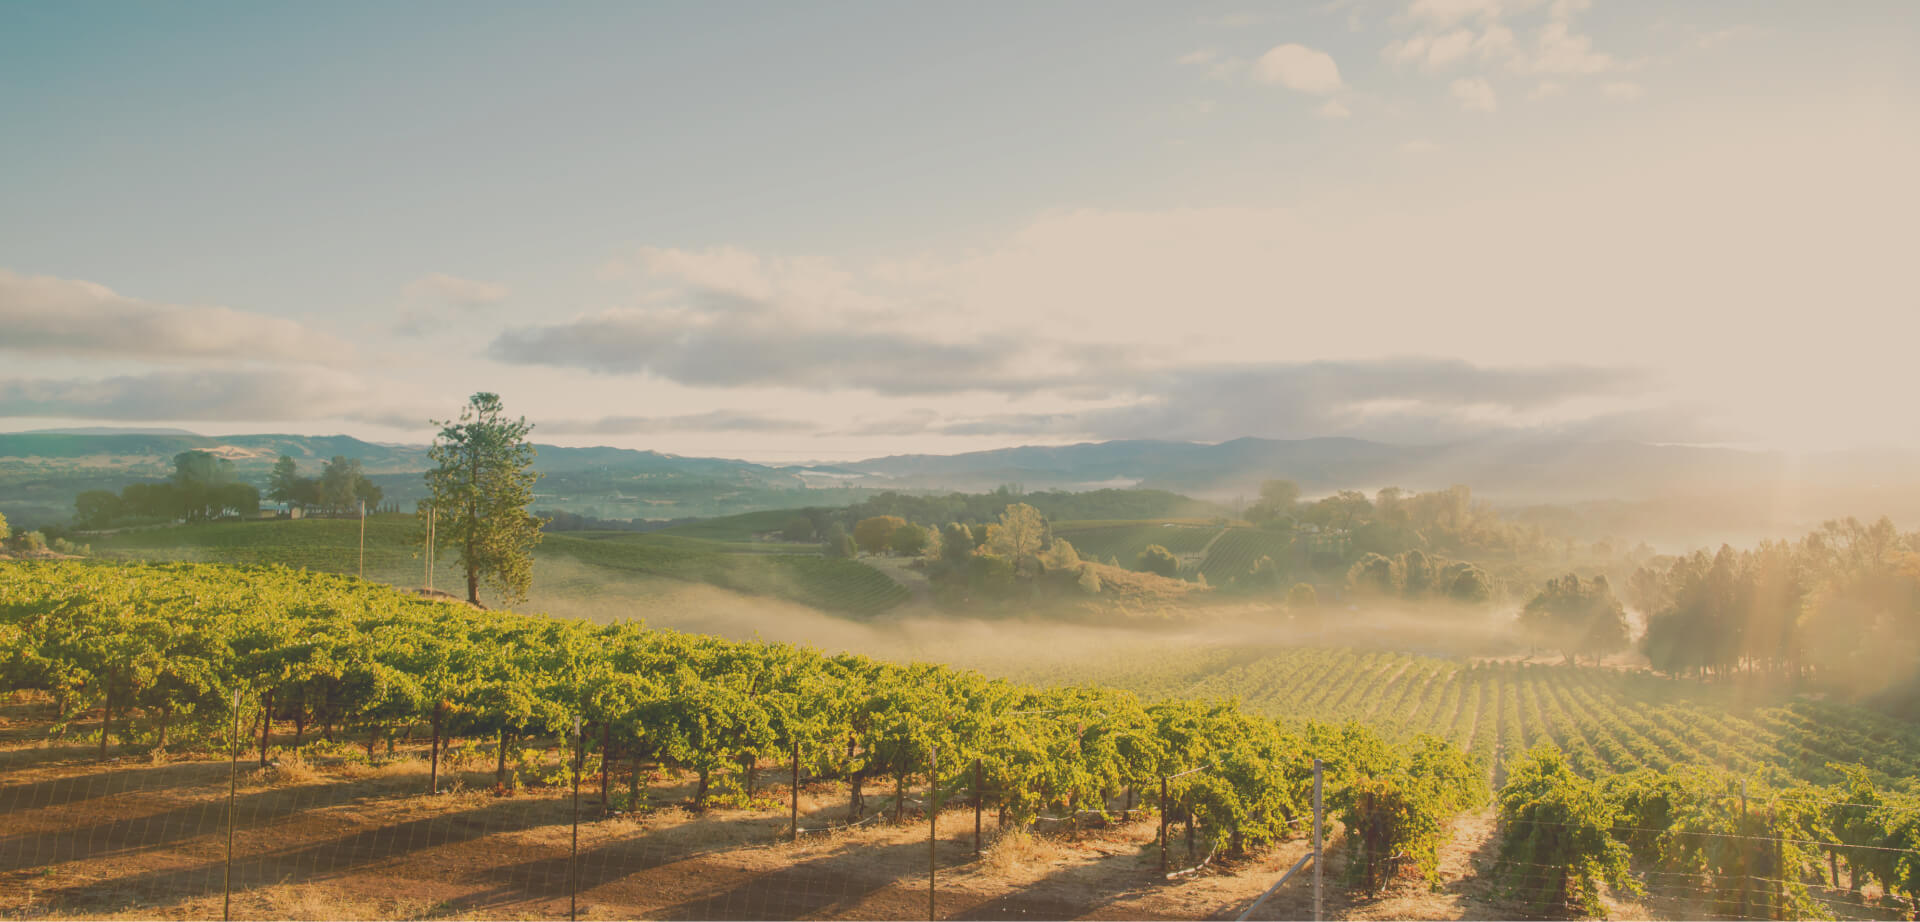 A row of grape vines in Napa Valley.